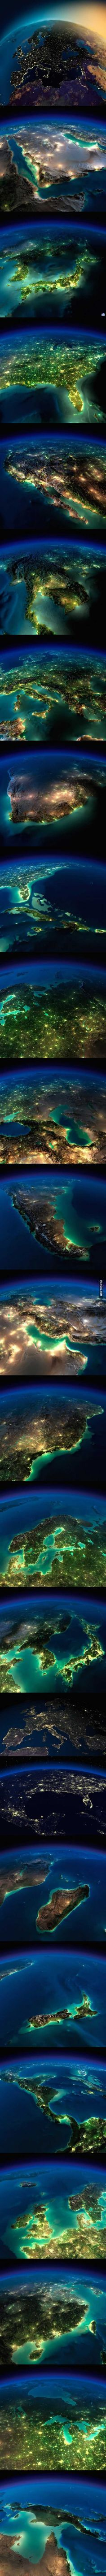 earth at night. God said it was good. #greenhouseeffect